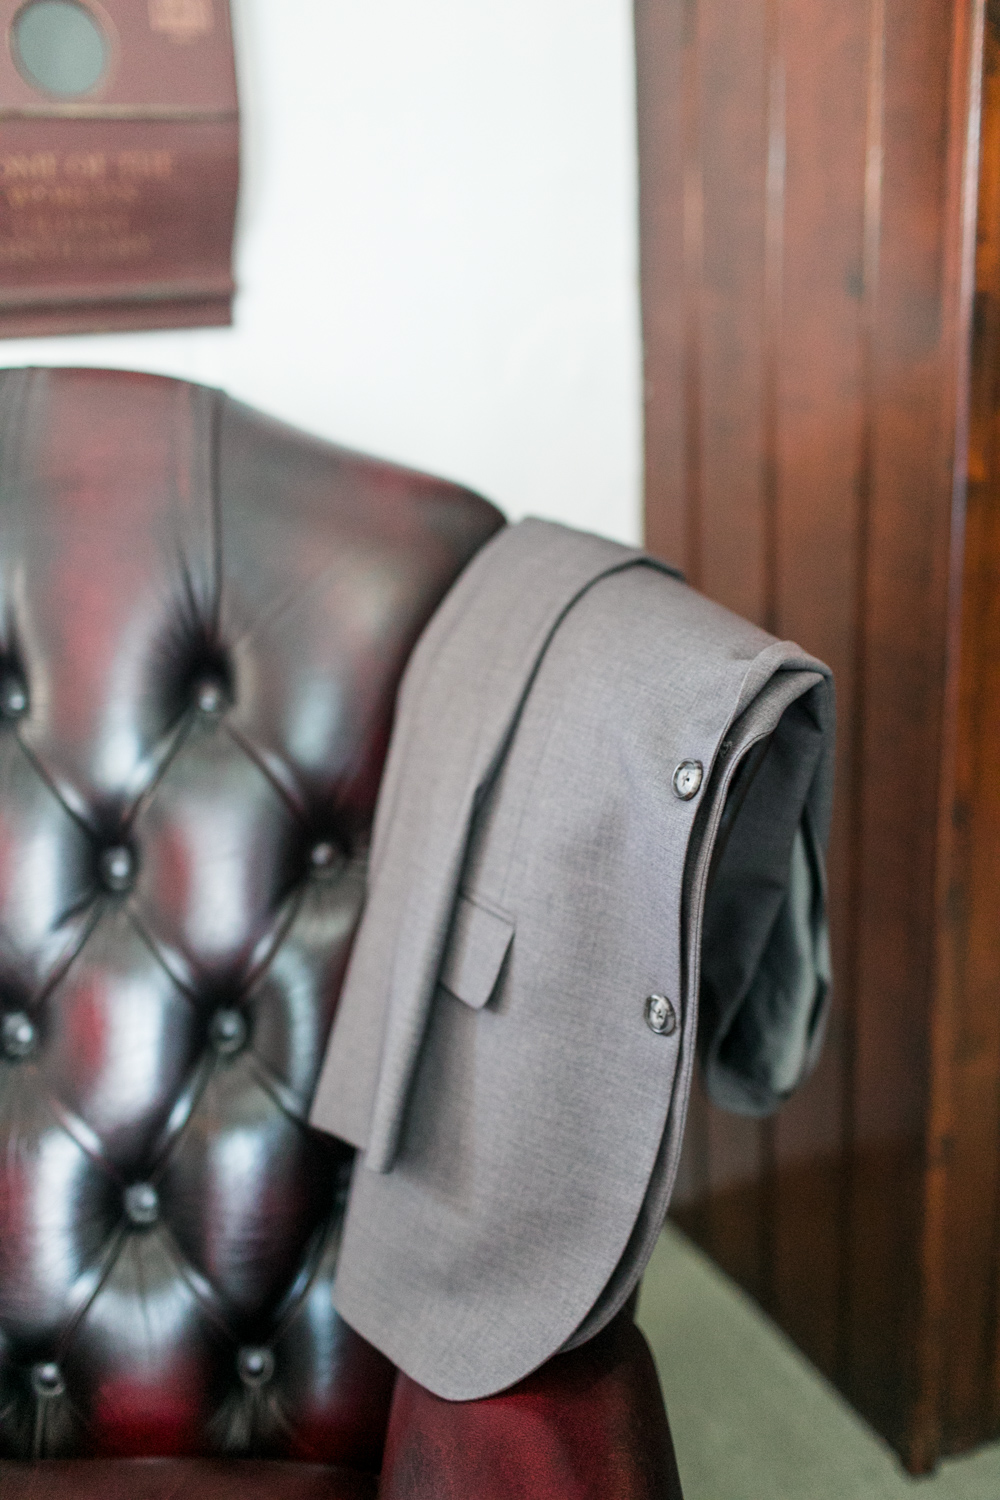 Groom's suit jacket lying on the back of a brown leather chair in bushmills hotel in northern ireland